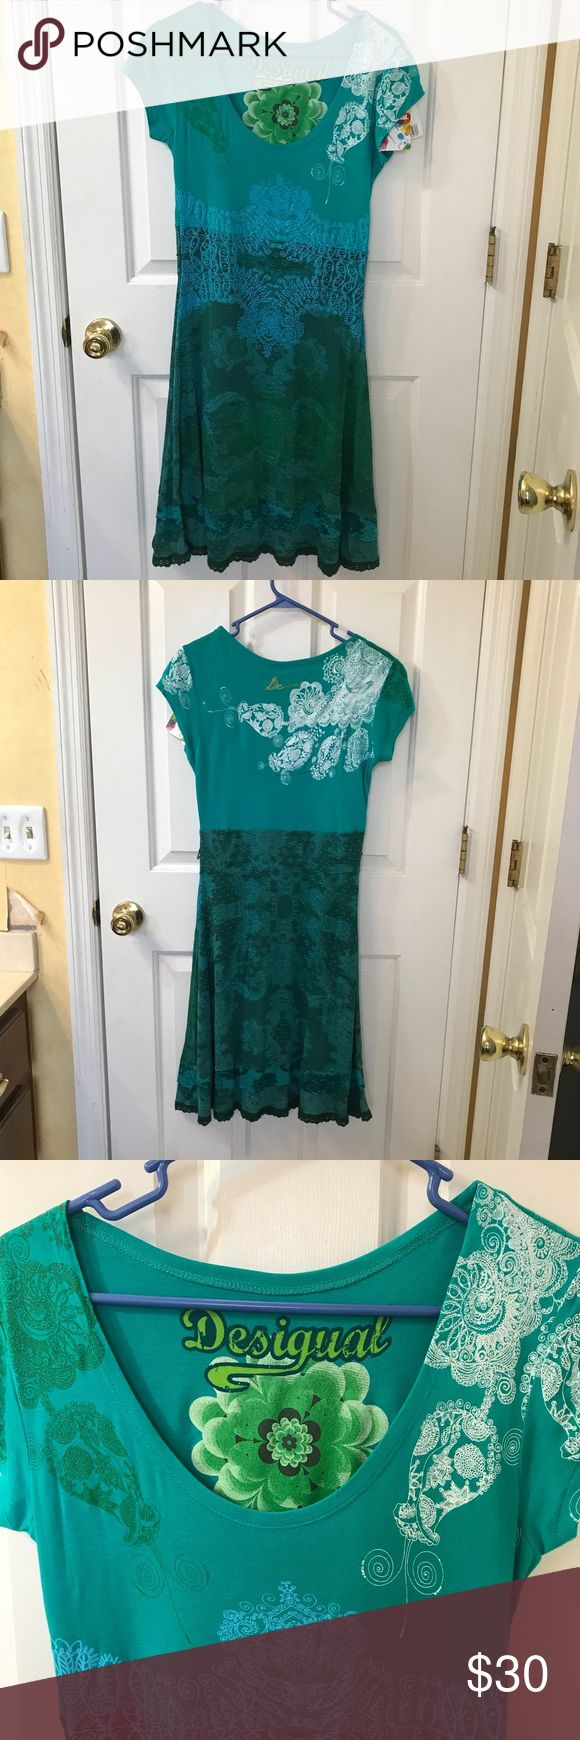 NWT Desigual Dress NWT Desigual Green Dress, size USA M (they run small, stretchy material) beautiful patterns all over Dress, see pics. I have misplaced belt but a rope or ribbon would work great with this dress! Desigual Dresses